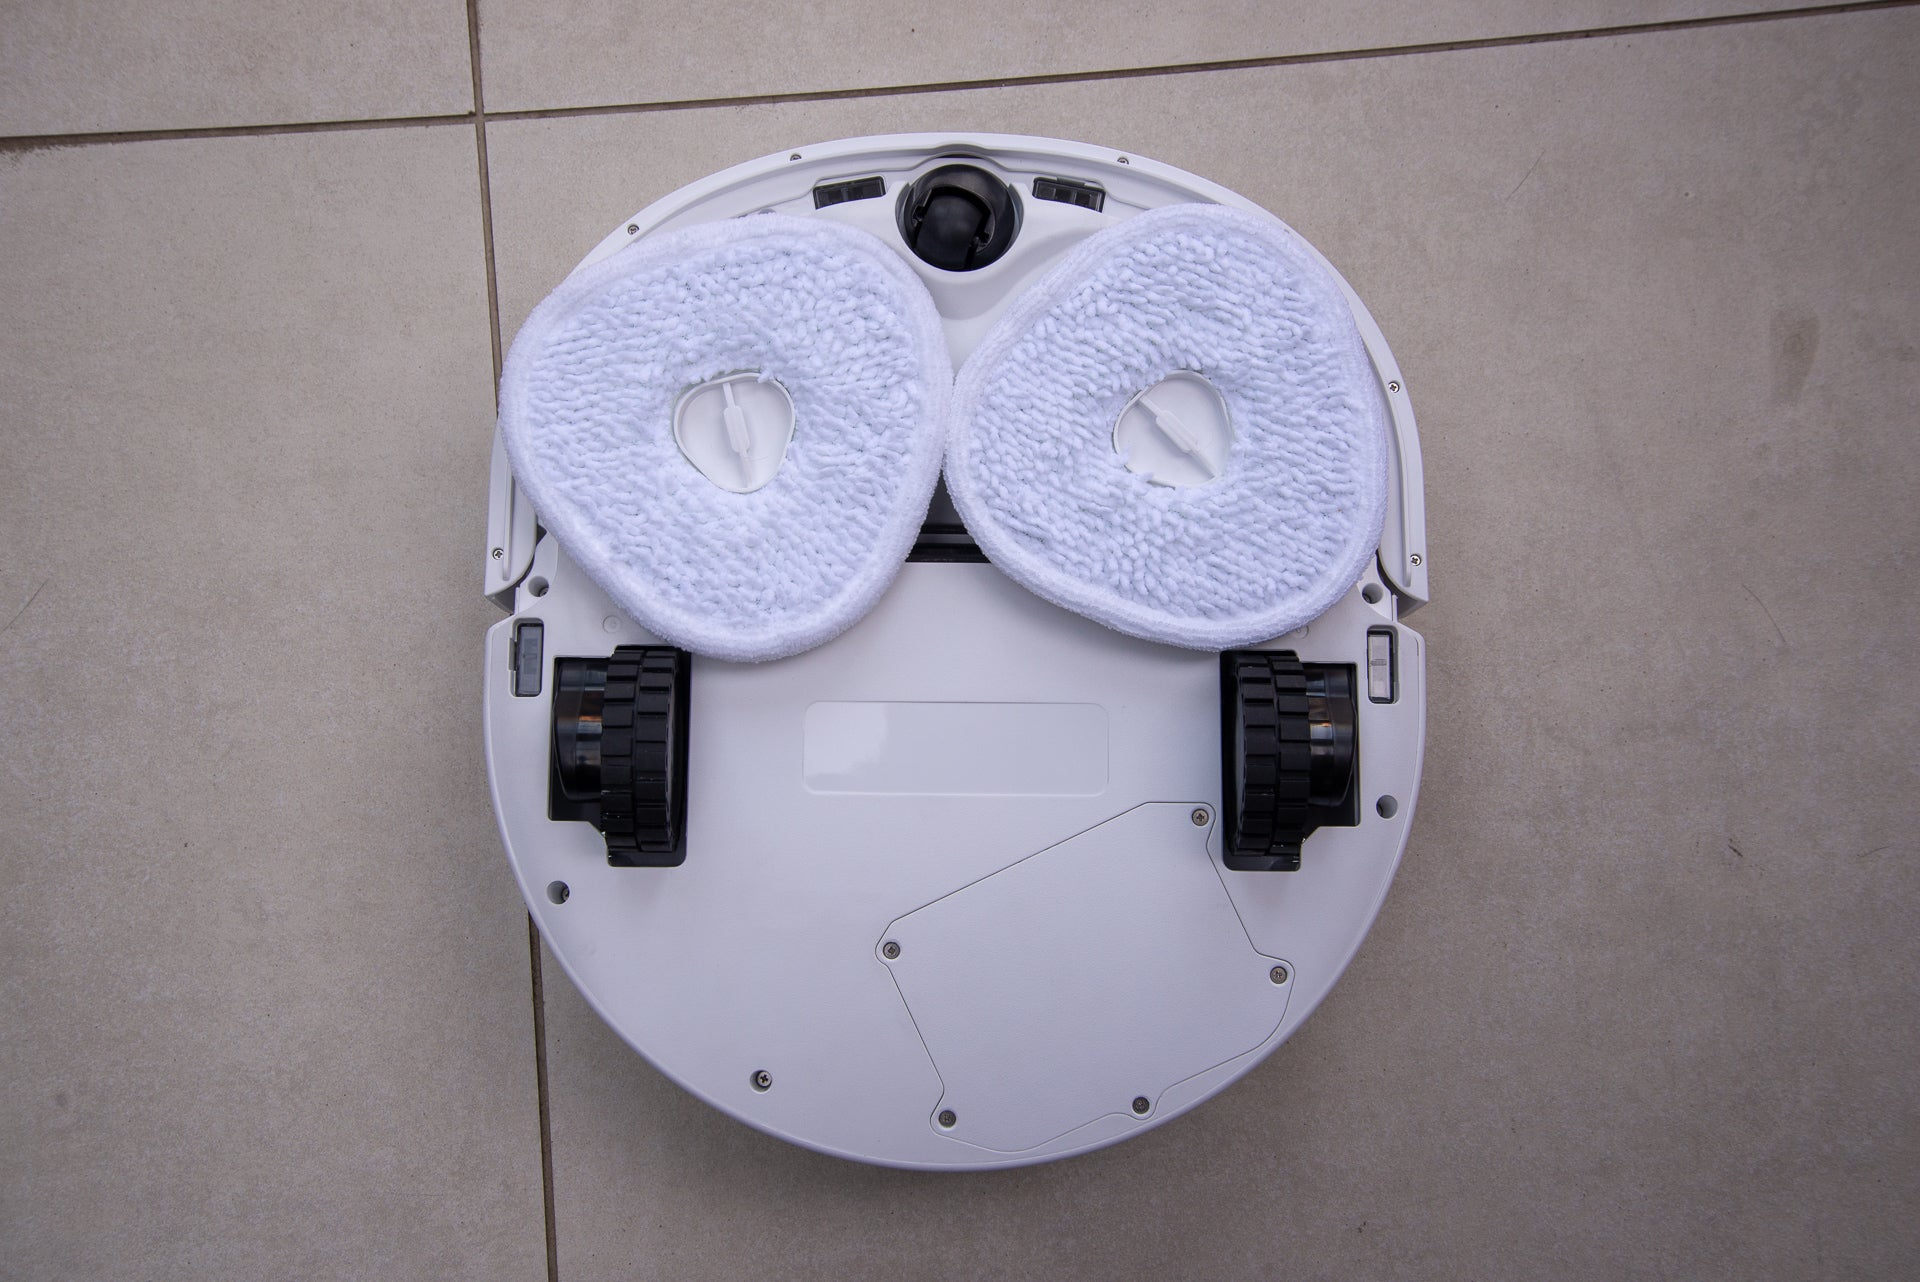 Narwal Robot Vacuum & Mop Review | Trusted Reviews